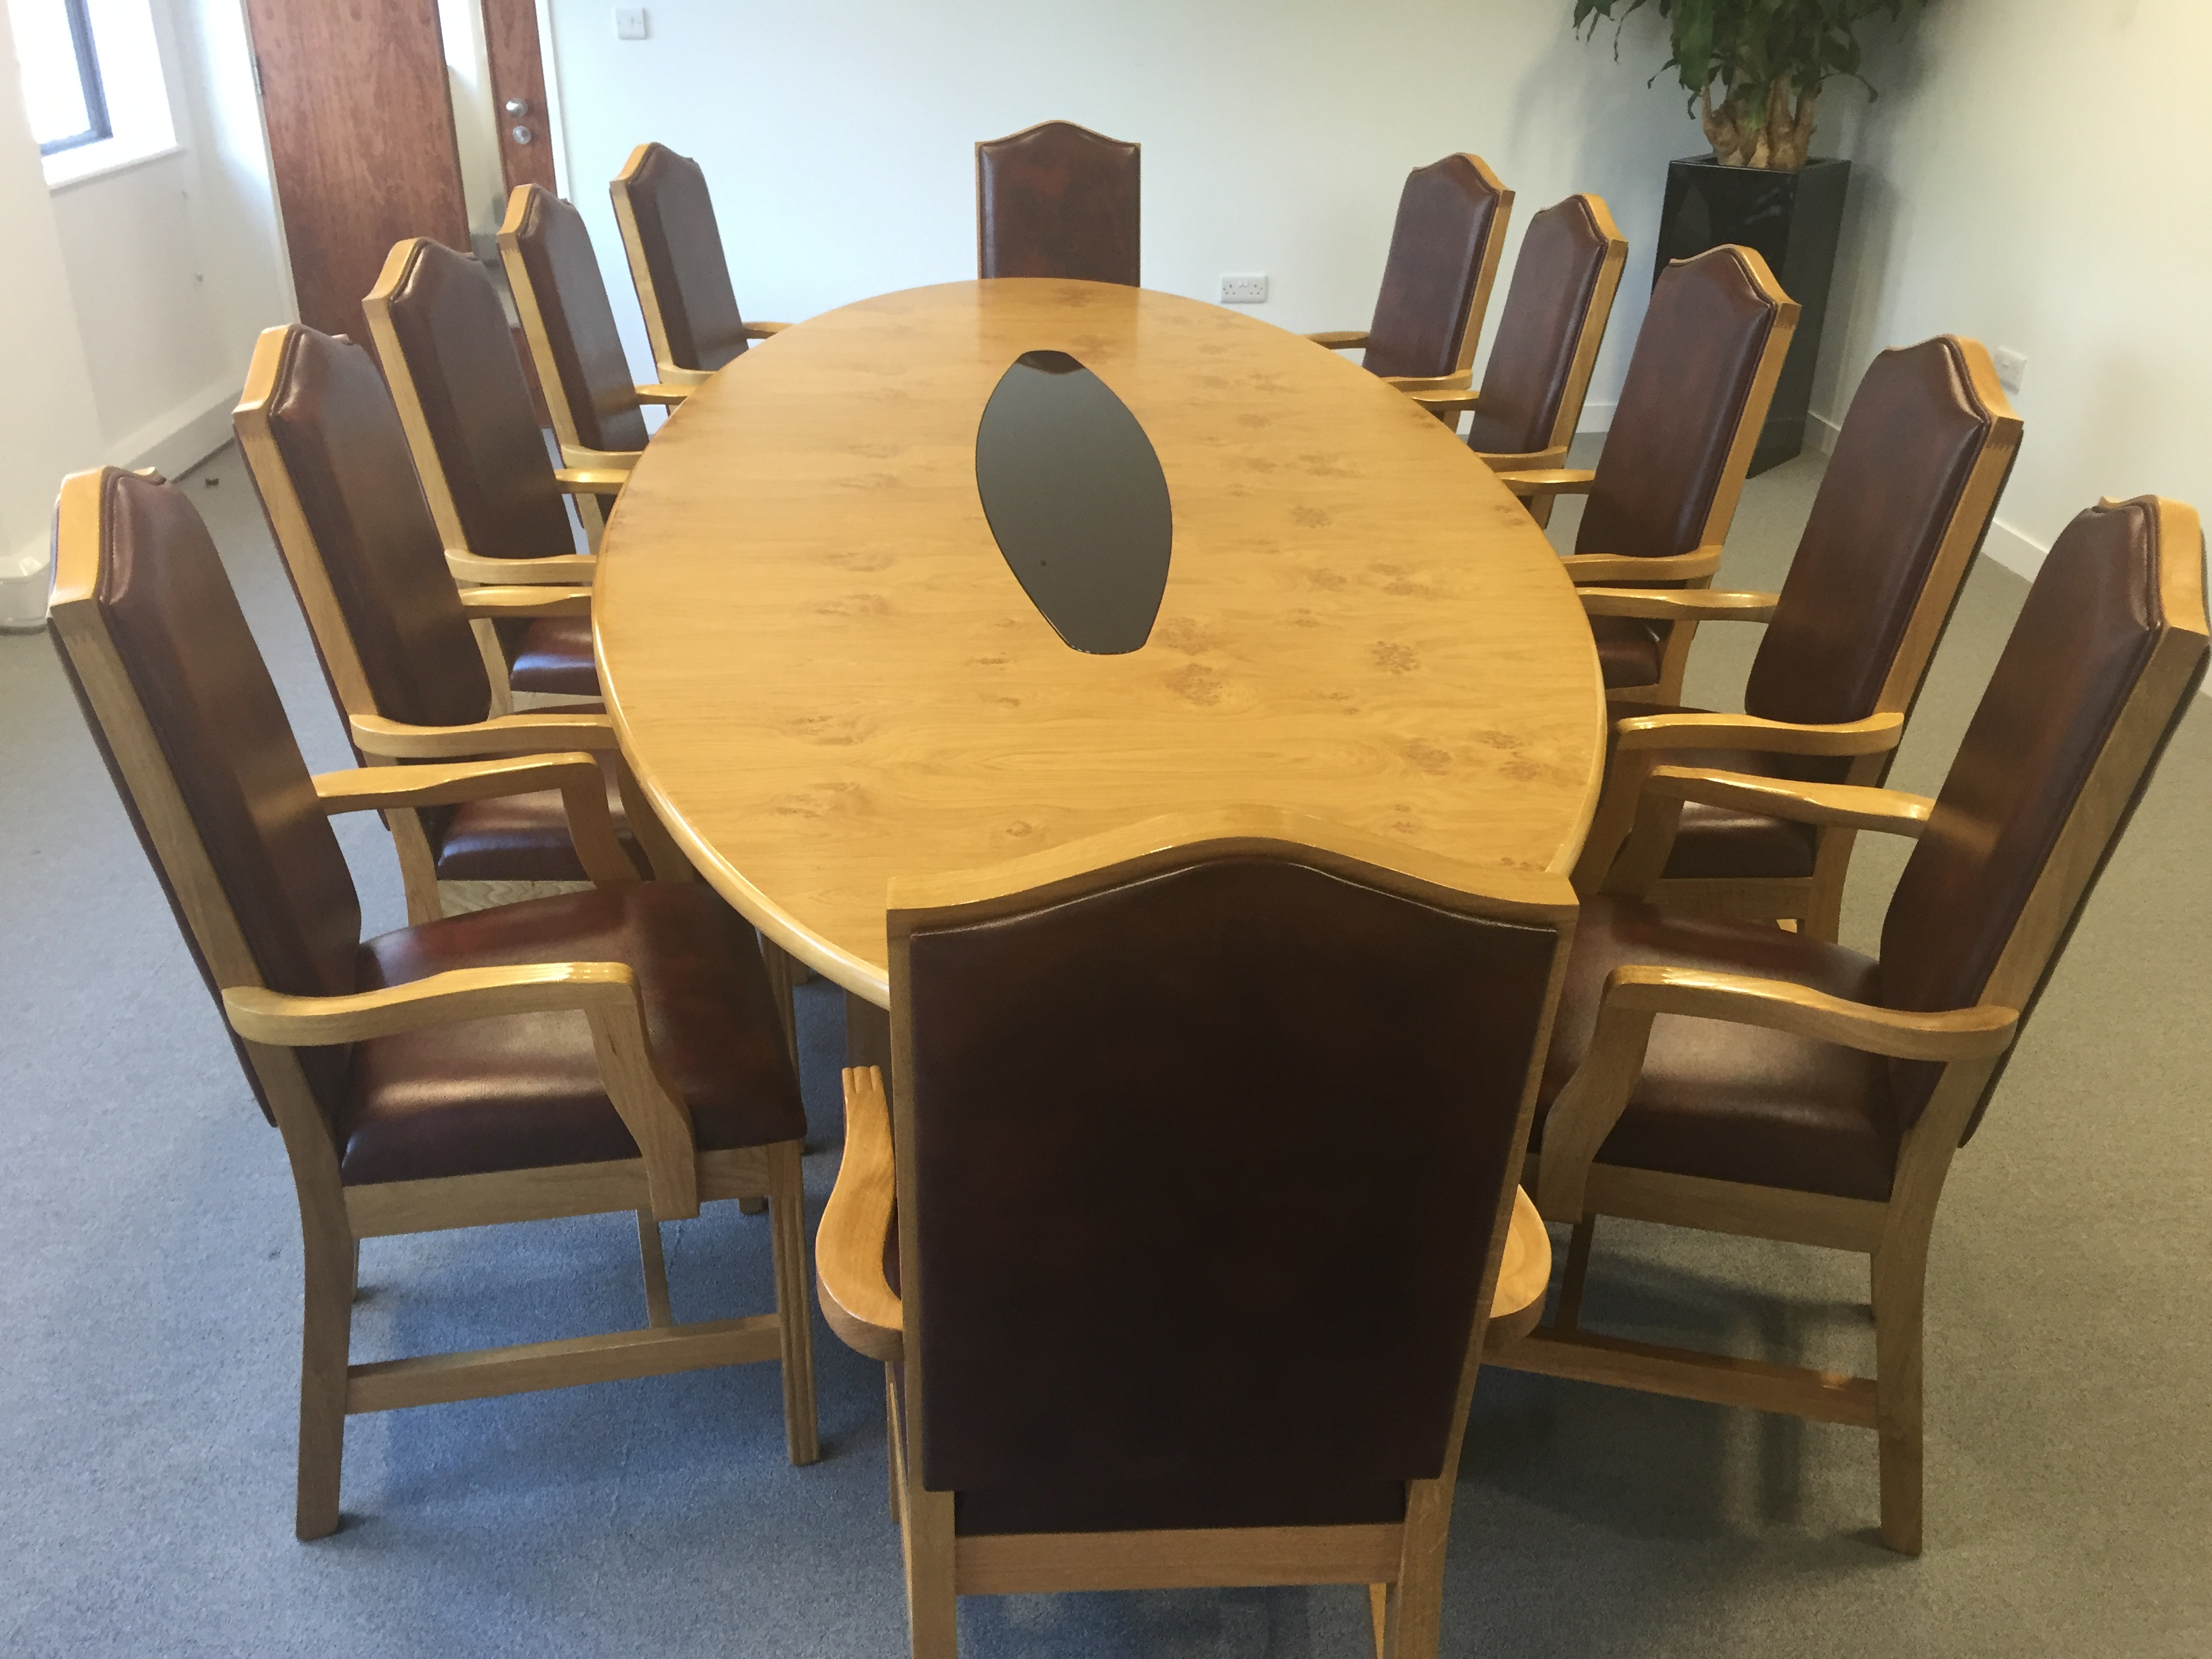 Lot 1 - Boardroom Table 3.5m x 1.4m (dismantled) and 12 x M2 Mayfair armchairs to match light rust